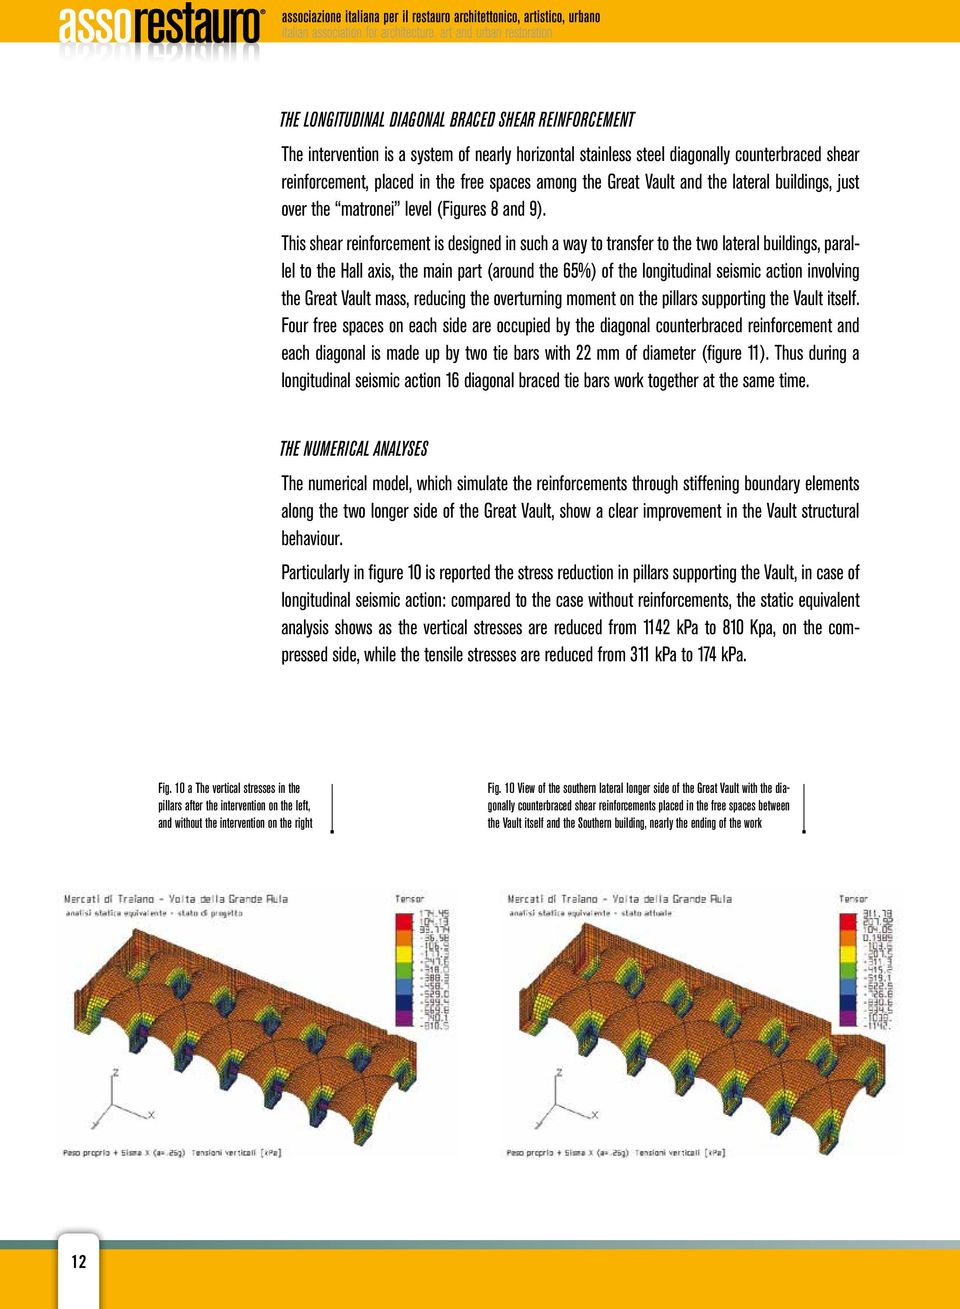 This shear reinforcement is designed in such a way to transfer to the two lateral buildings, parallel to the Hall axis, the main part (around the 65%) of the longitudinal seismic action involving the